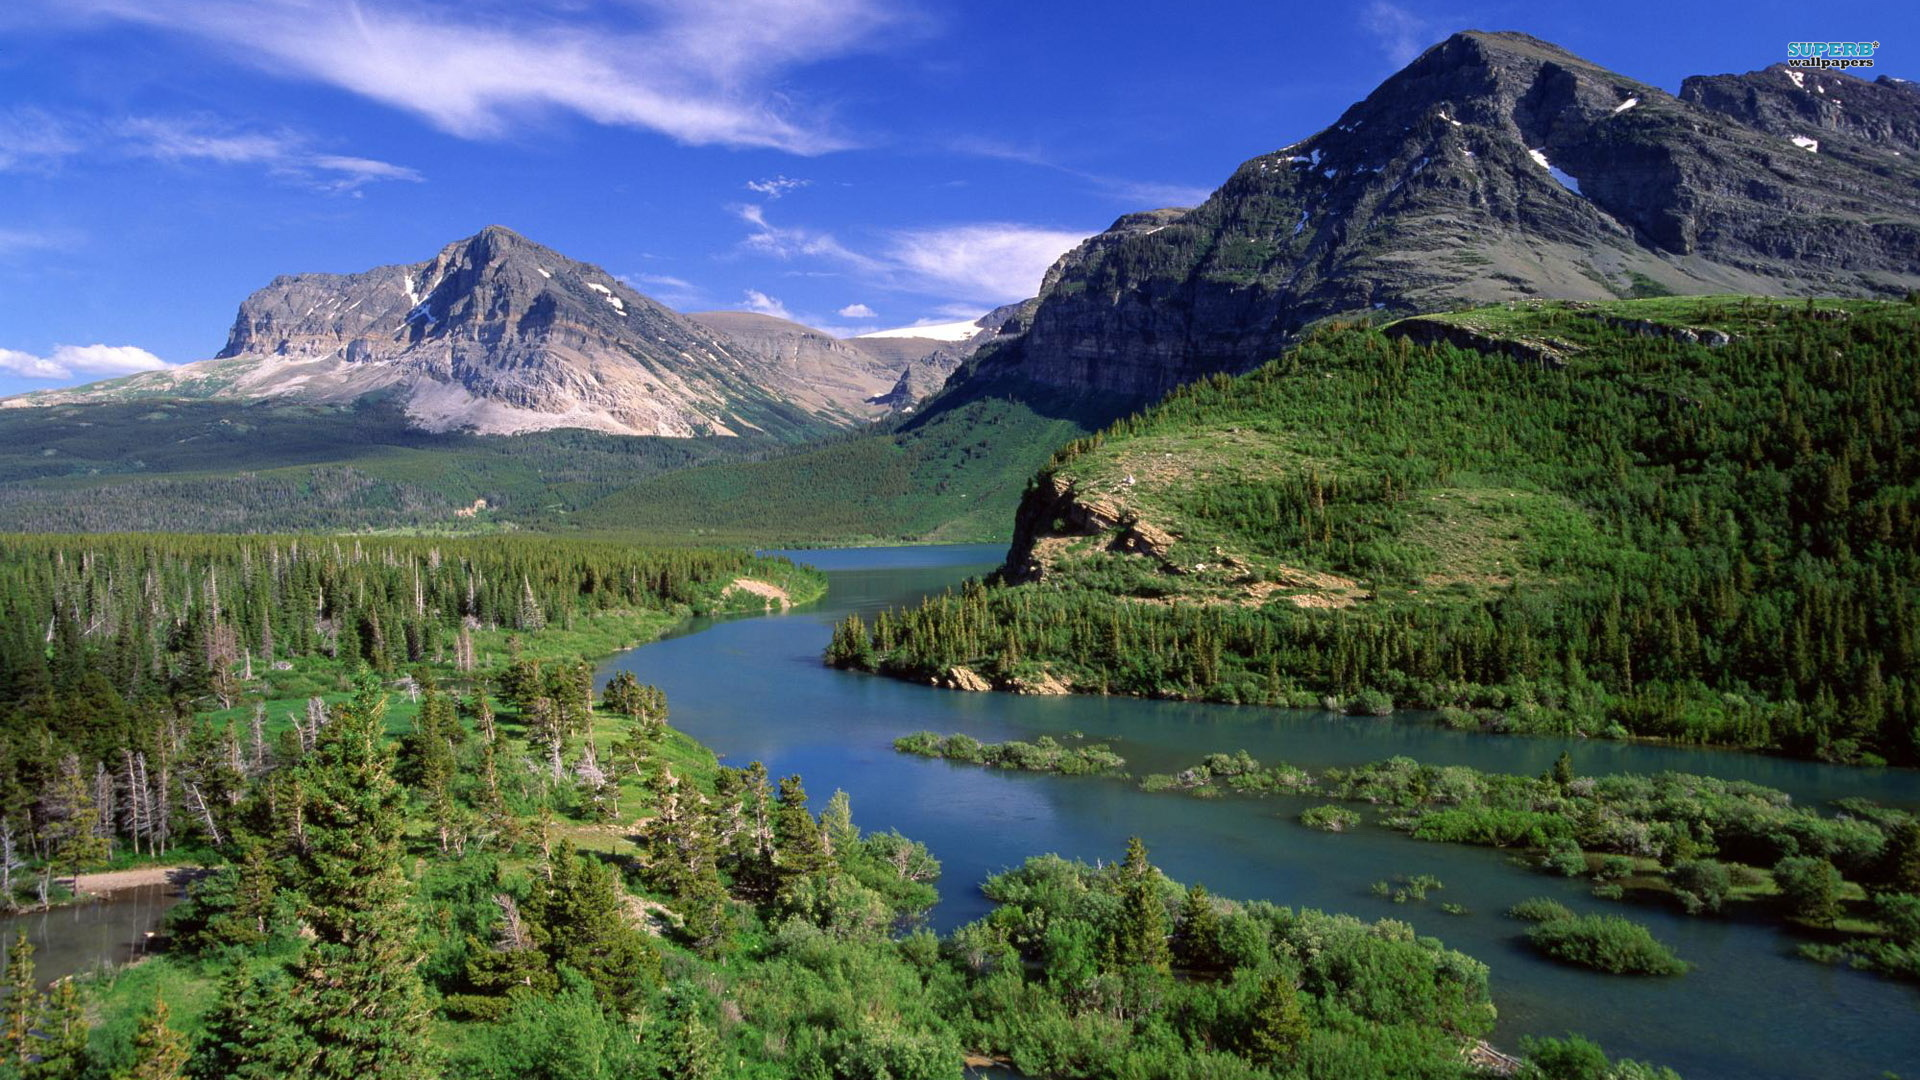 Glacier National Park wallpaper 1920x1080 jpg